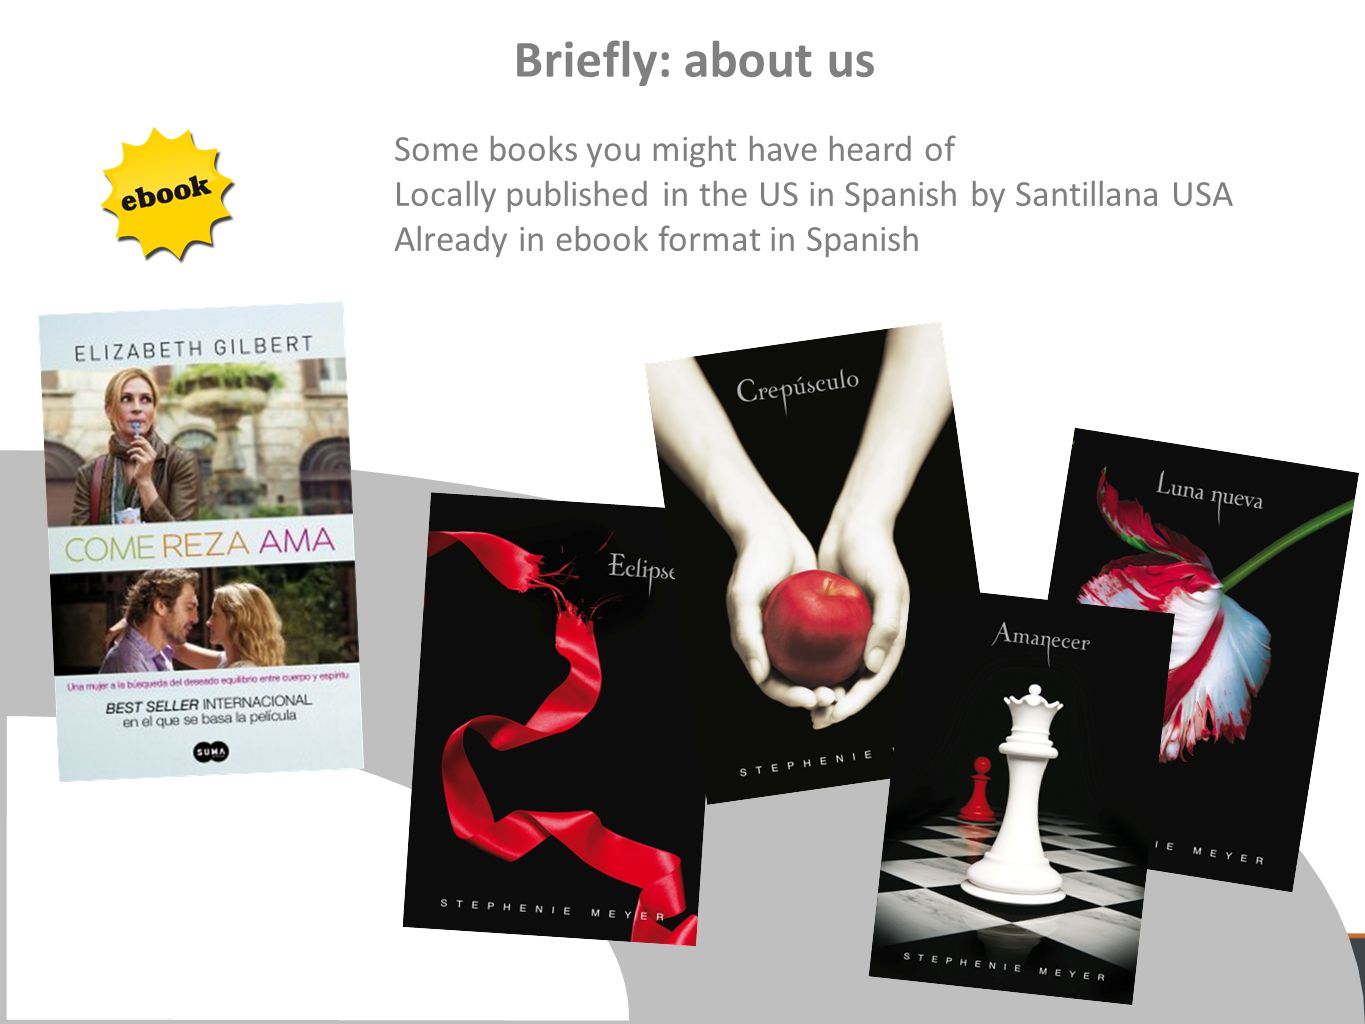 Some books you might have heard of Locally published in the US in Spanish by Santillana USA Already in ebook format in Spanish Briefly: about us